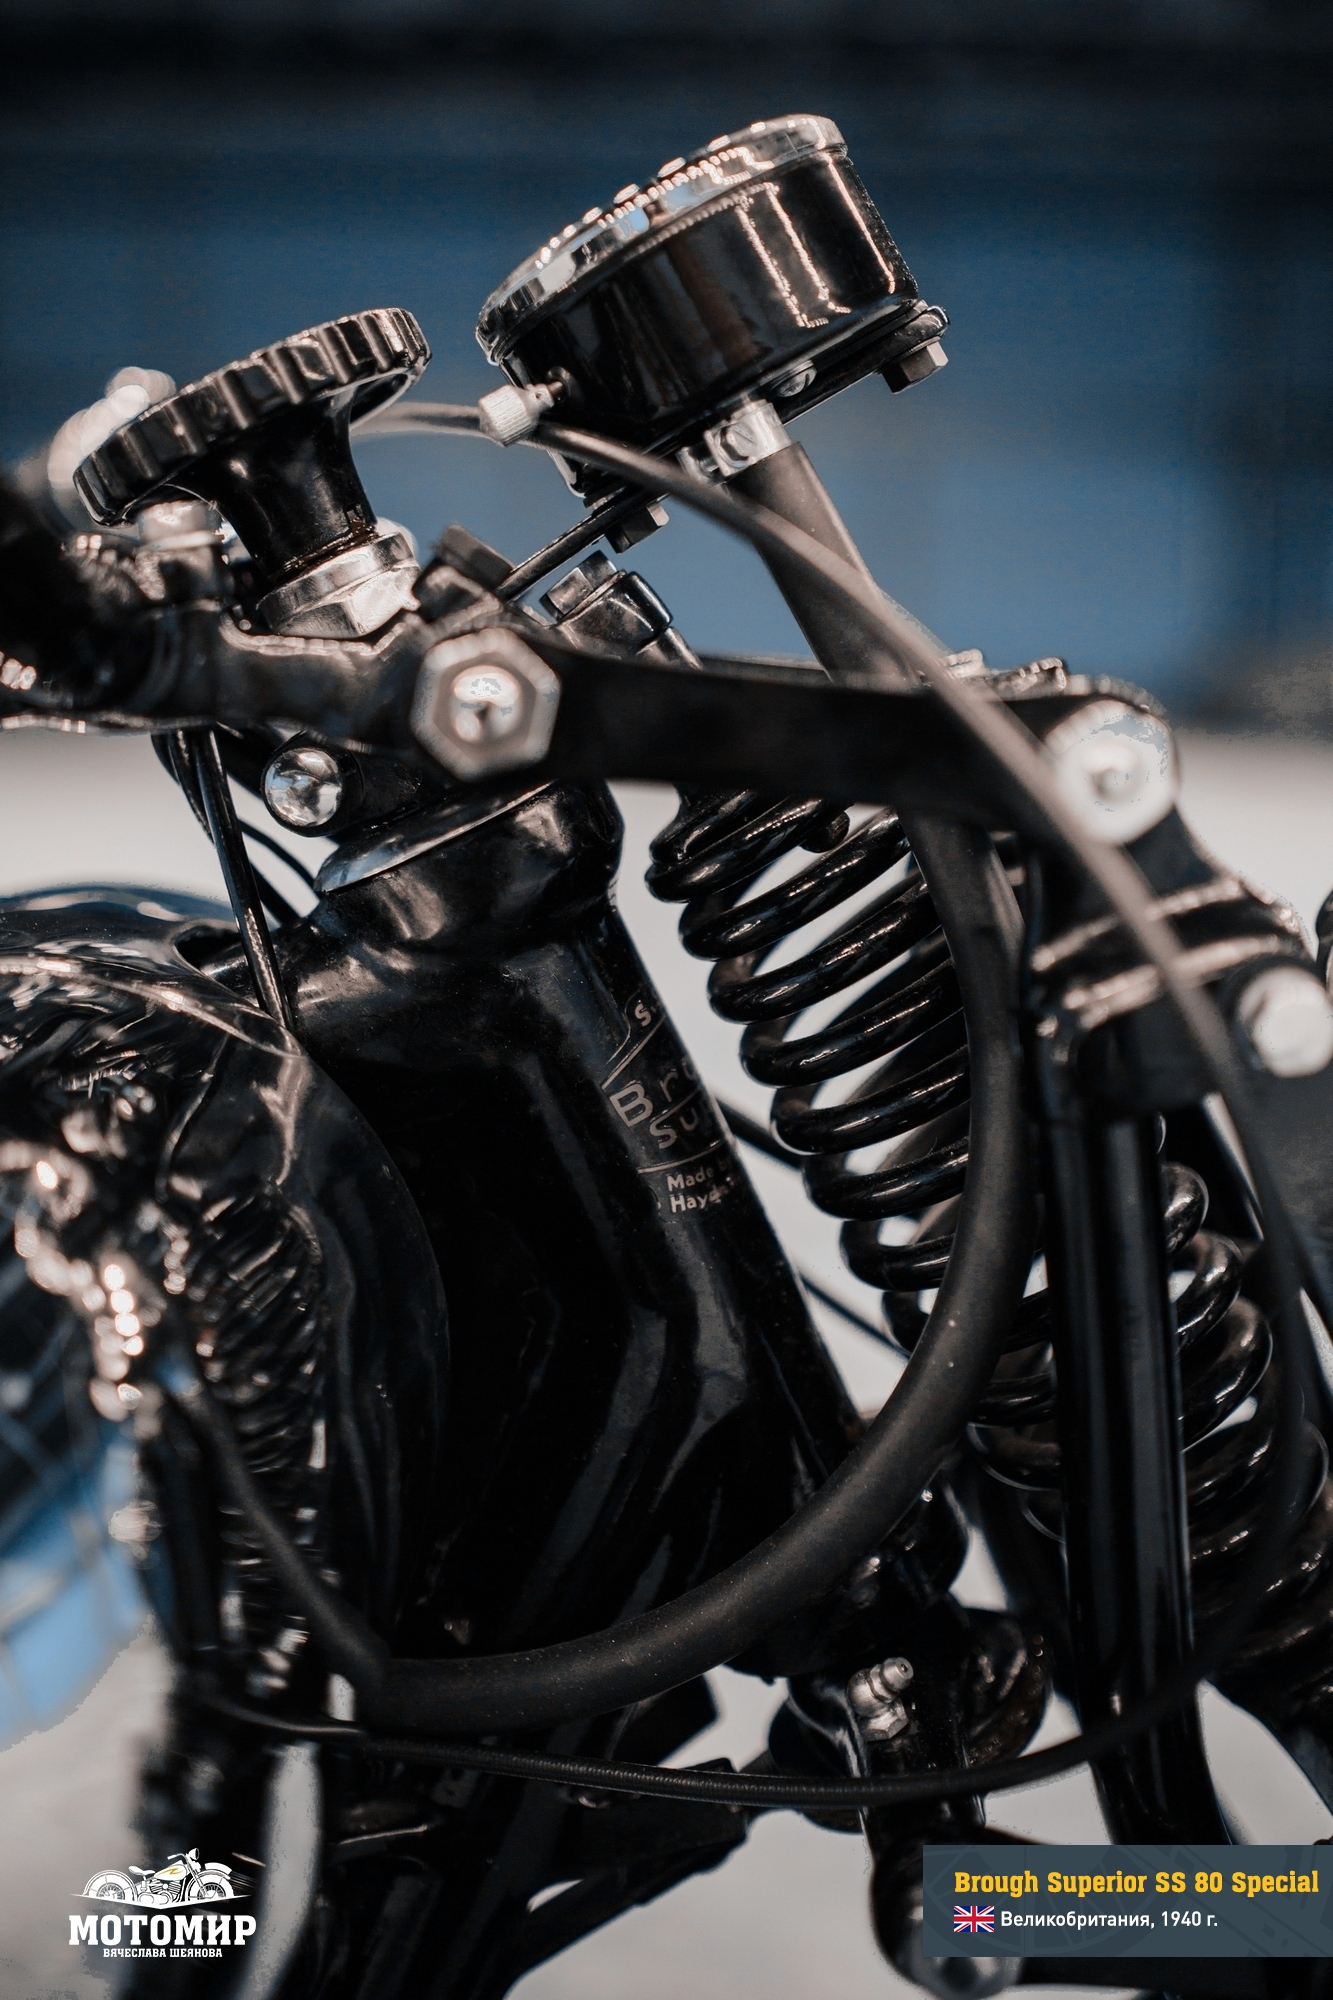 brough-superior-ss-80-201502-web-30